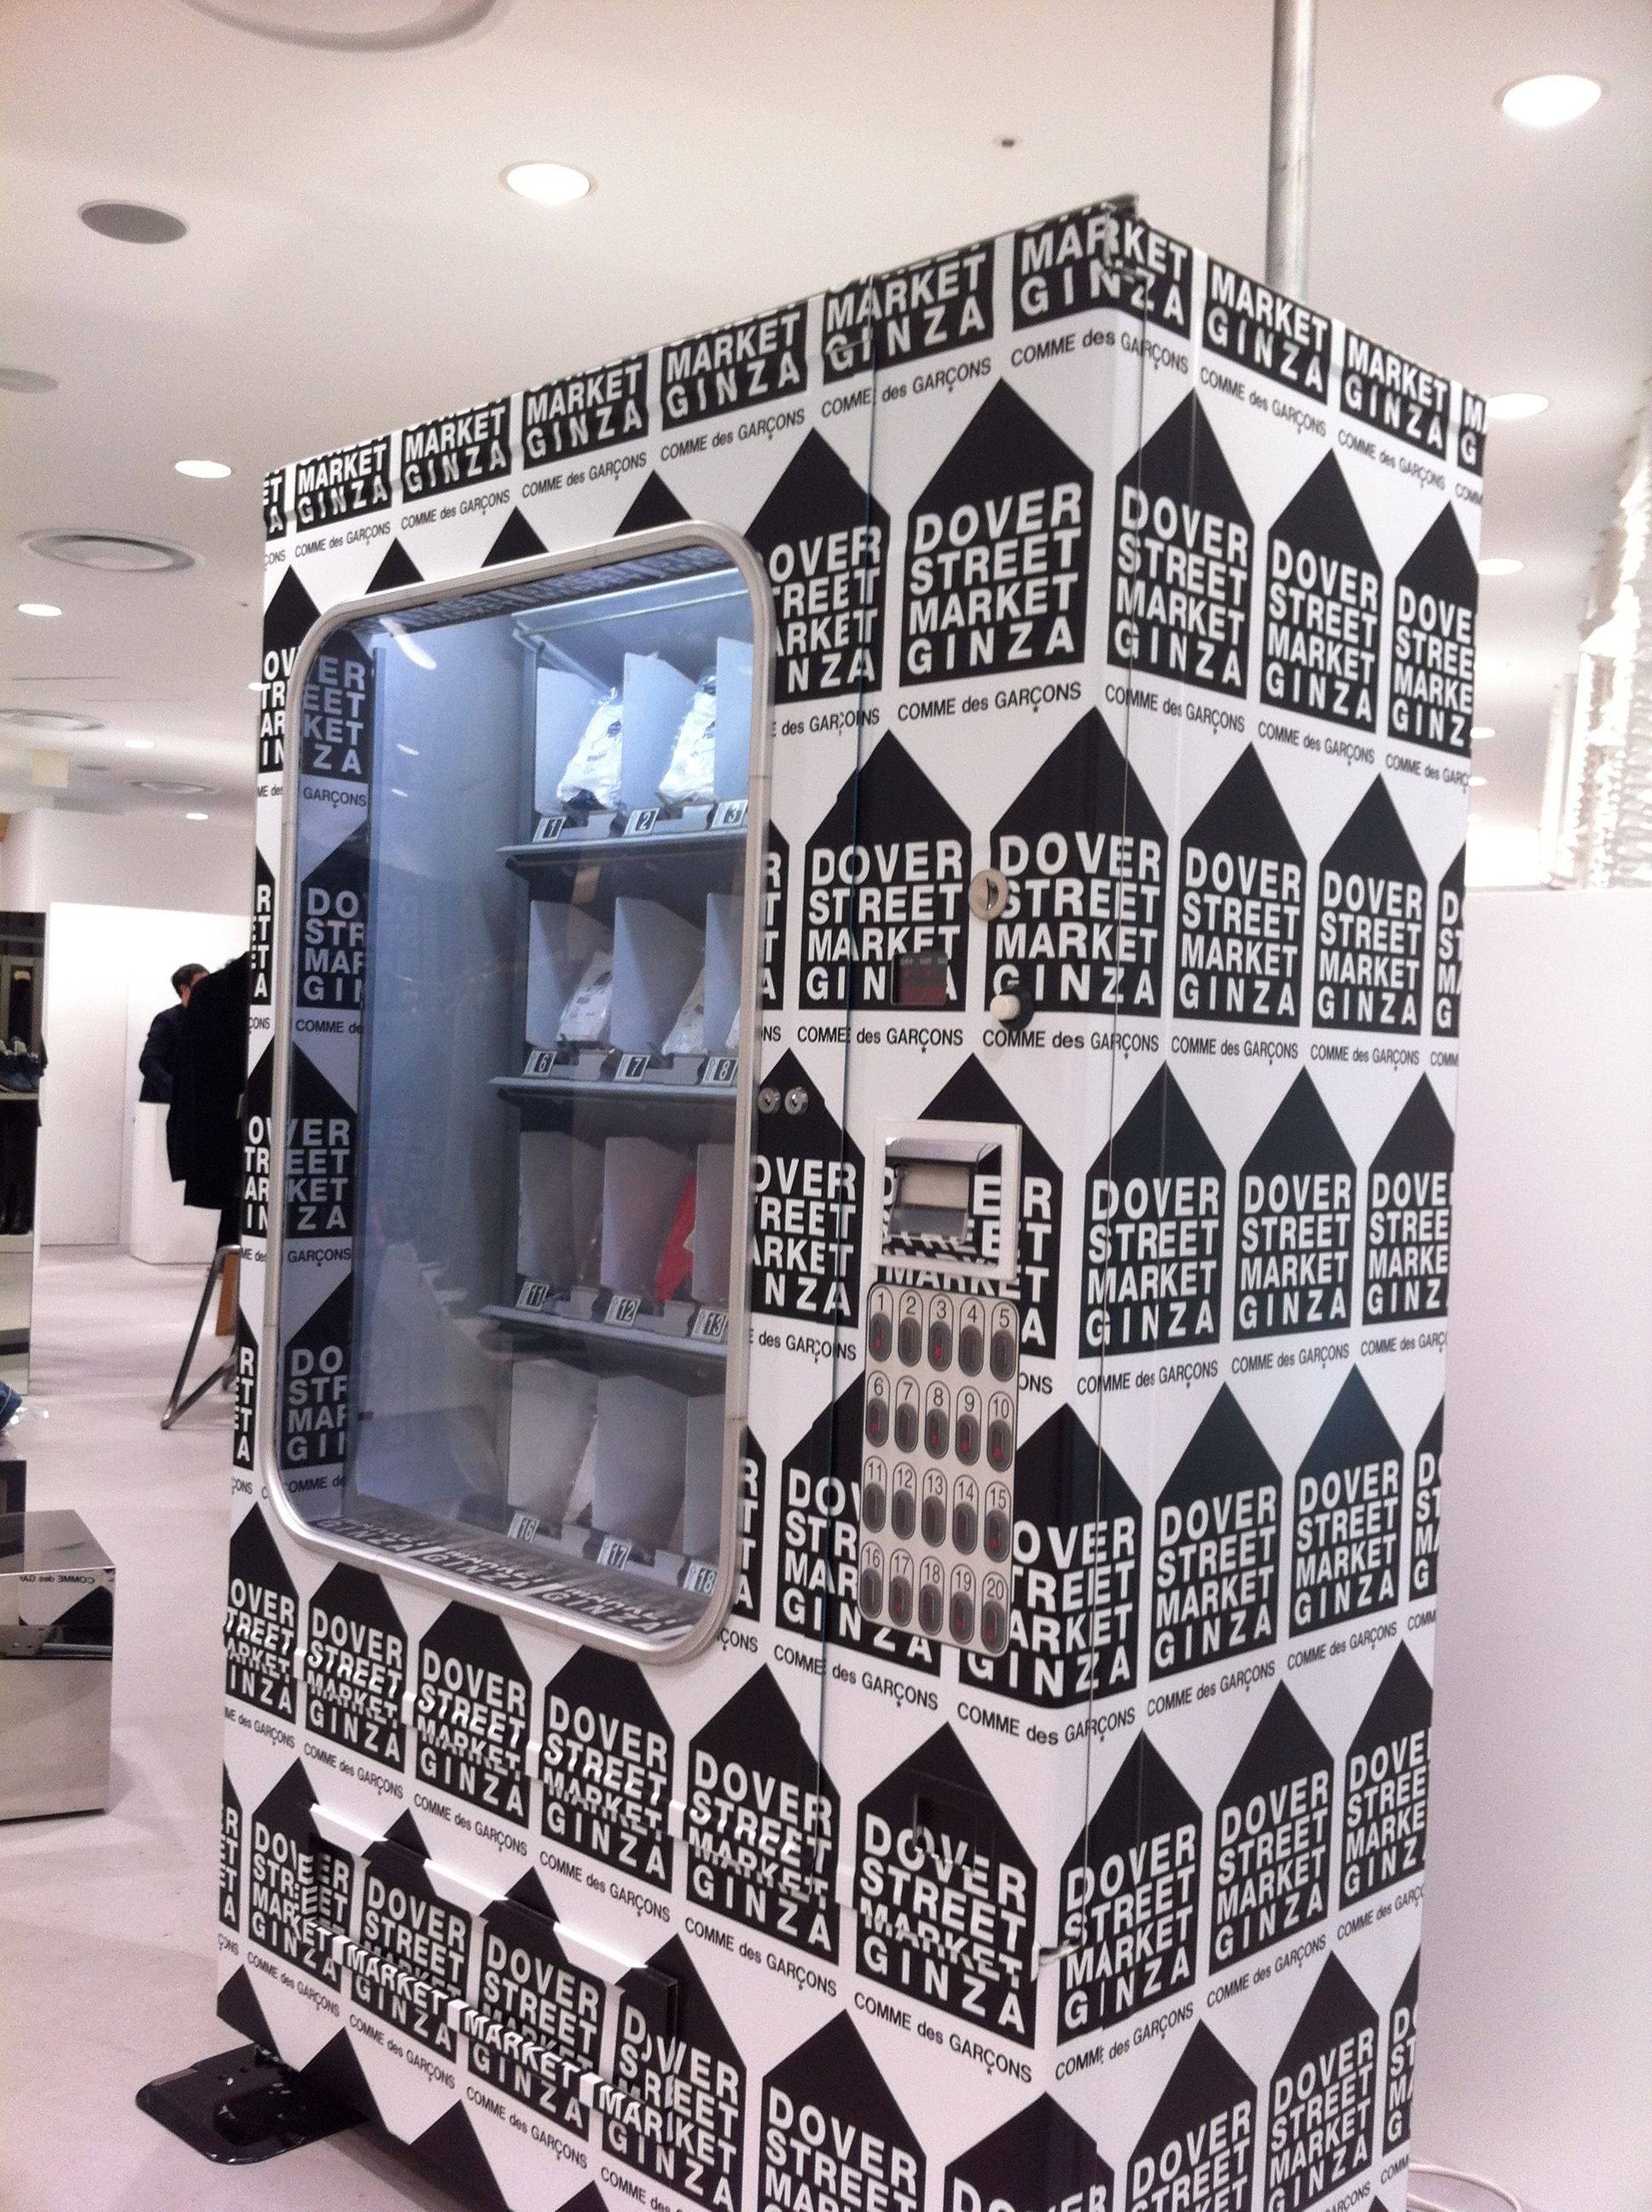 Dover street market store new york city retail design blog - Vending Machine At Dover Street Market Ginza